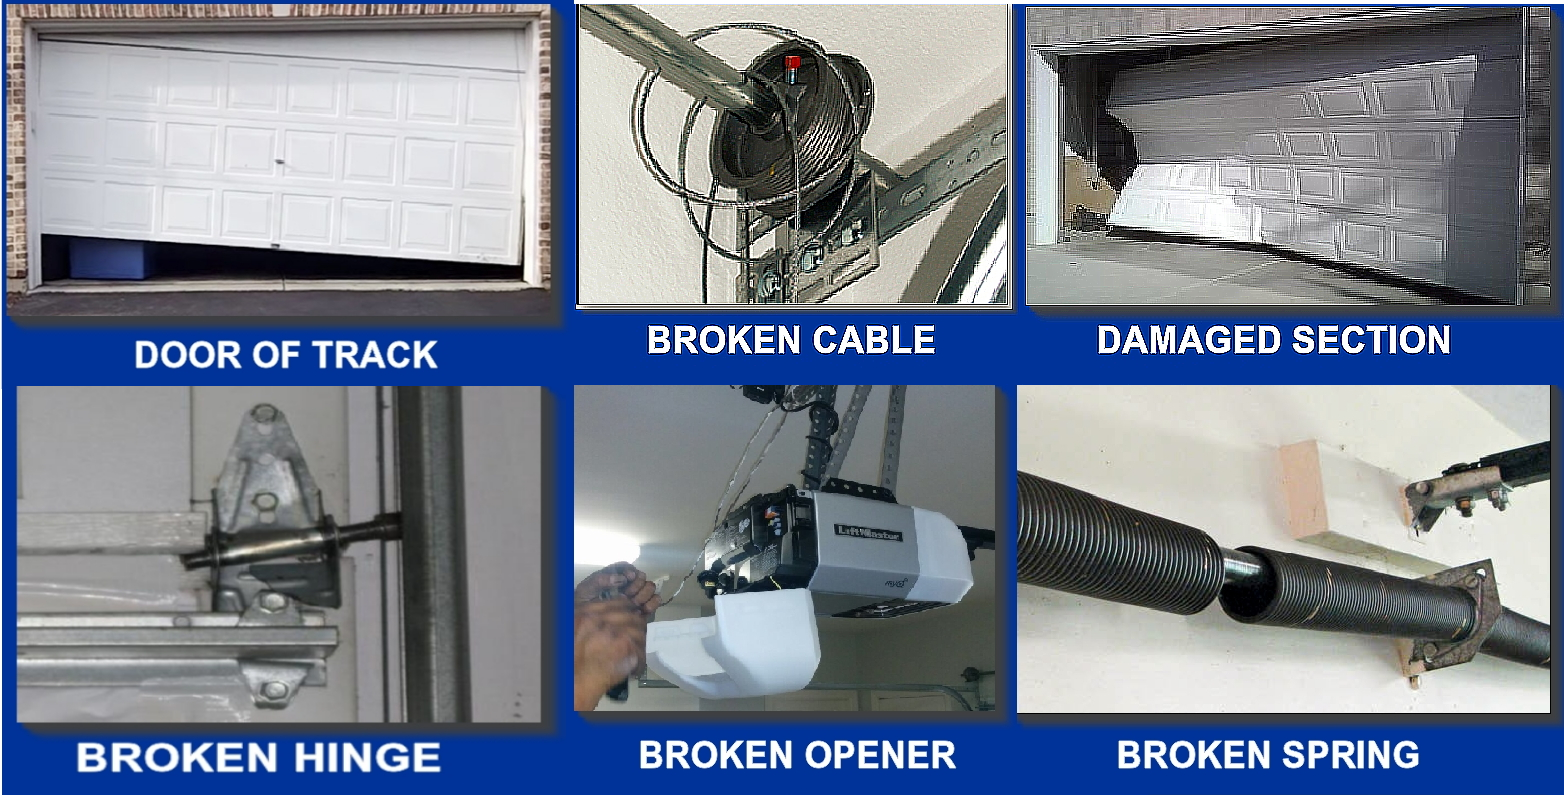 Garage Door Opener Range Issue Images Door Design For Home